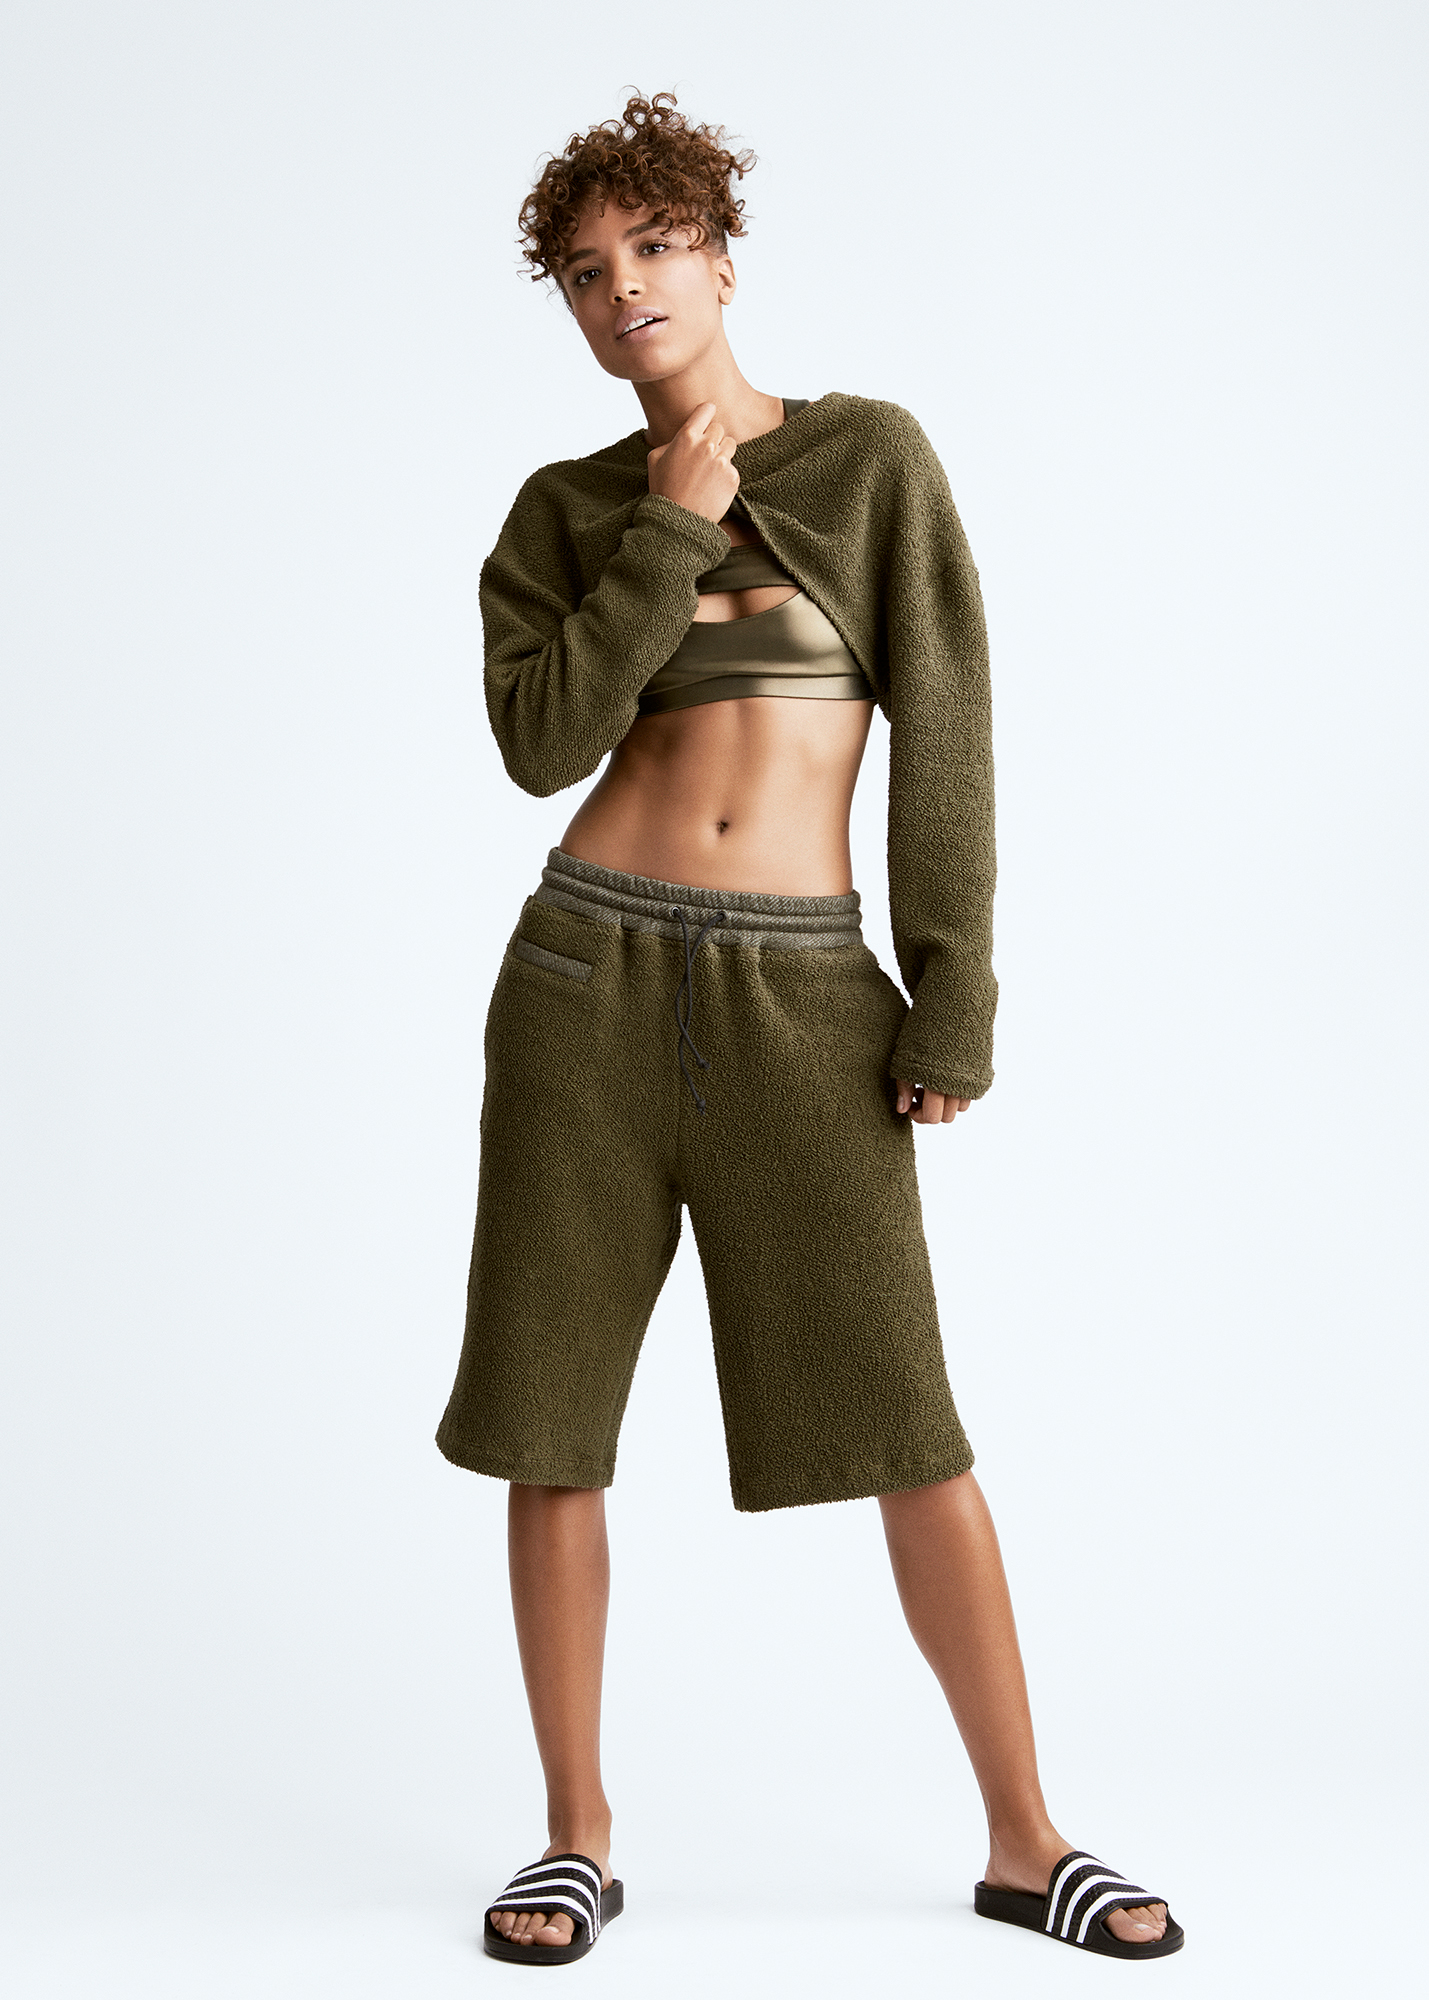 1288 JAC 26A CEO LOOKBOOK SS 18 CEO_SS18_ACTIVE2518crop.jpg